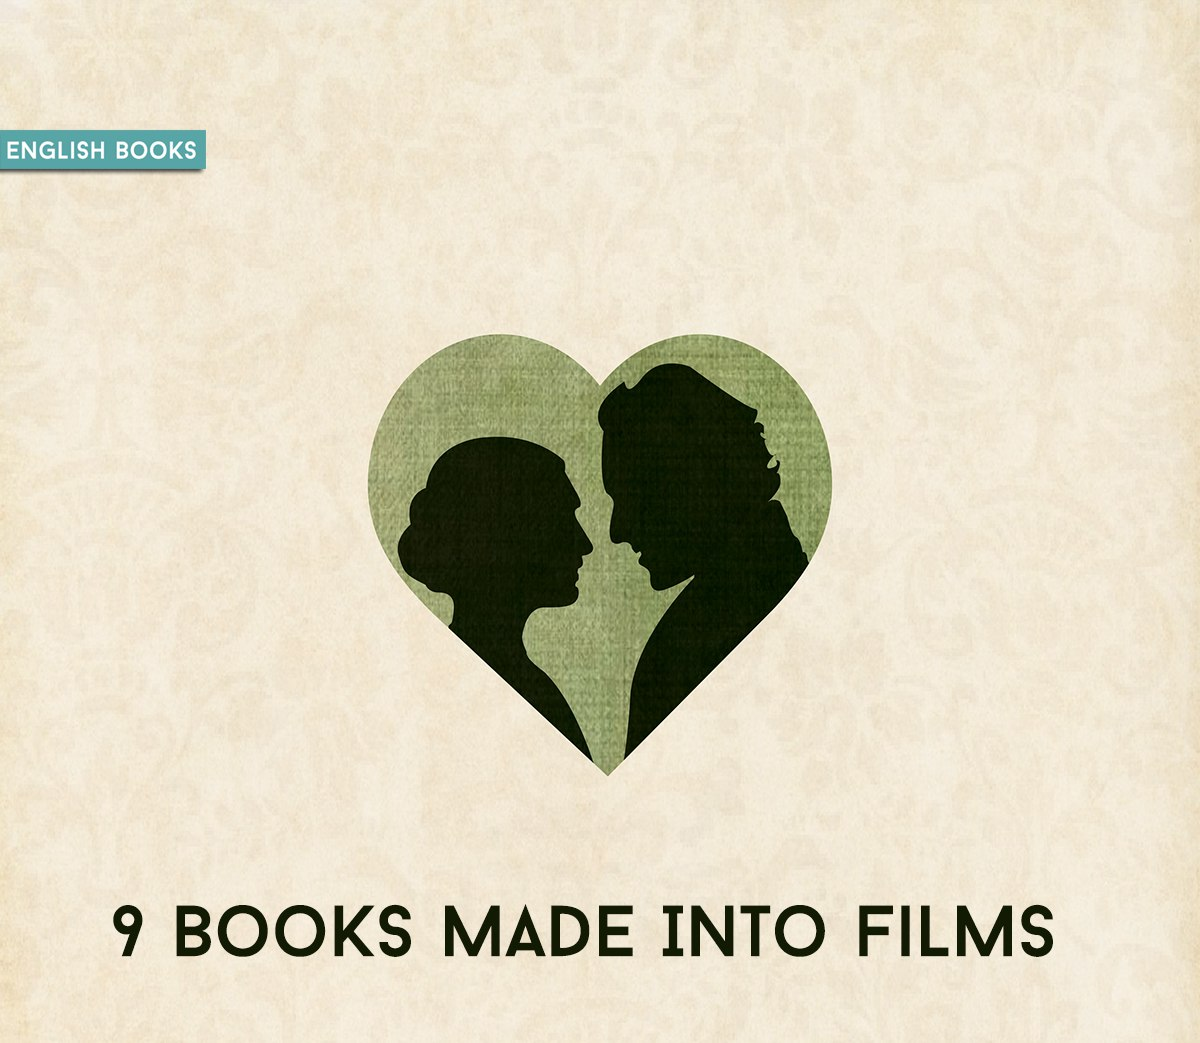 9 Books Made Into Films